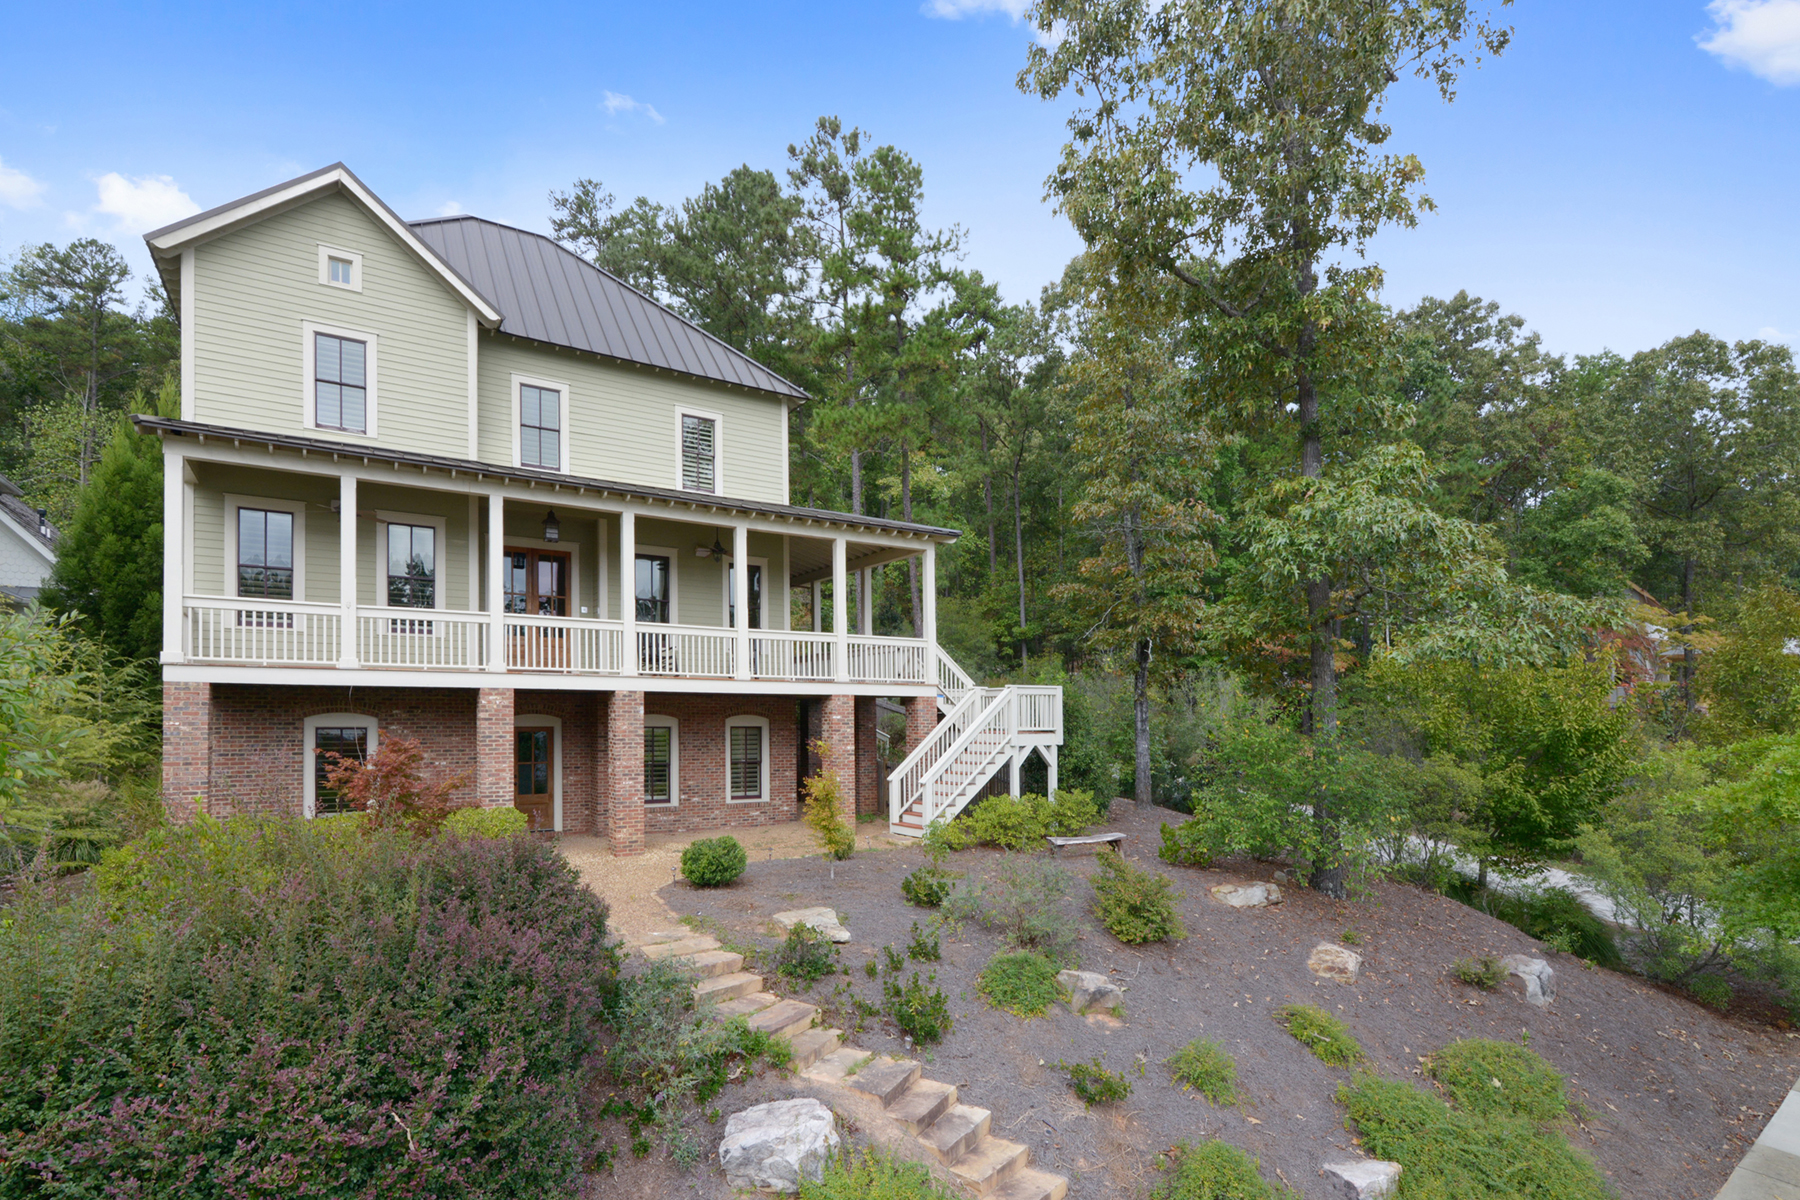 Additional photo for property listing at Upscale Serenbe Farmhouse-Style Home 10723 Serenbe Lane Chattahoochee Hills, 조지아 30268 미국